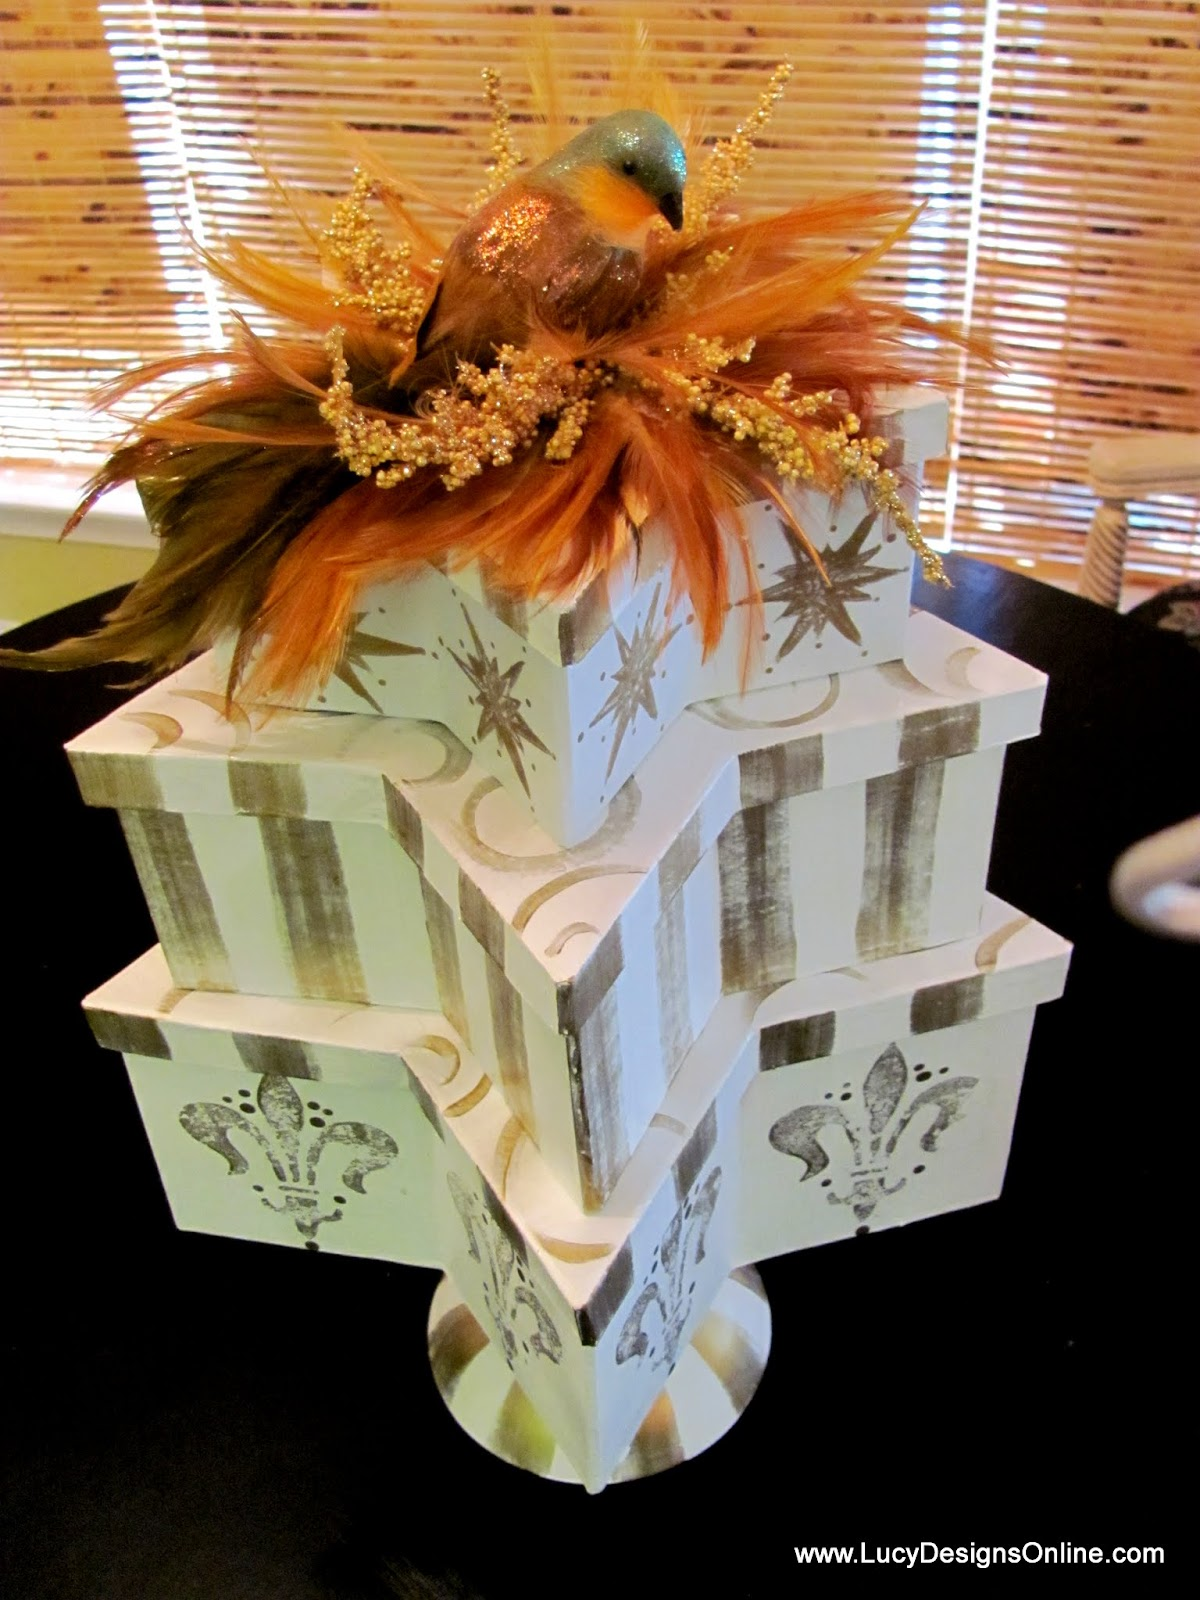 stacked gift box topiaries with birds and feathers